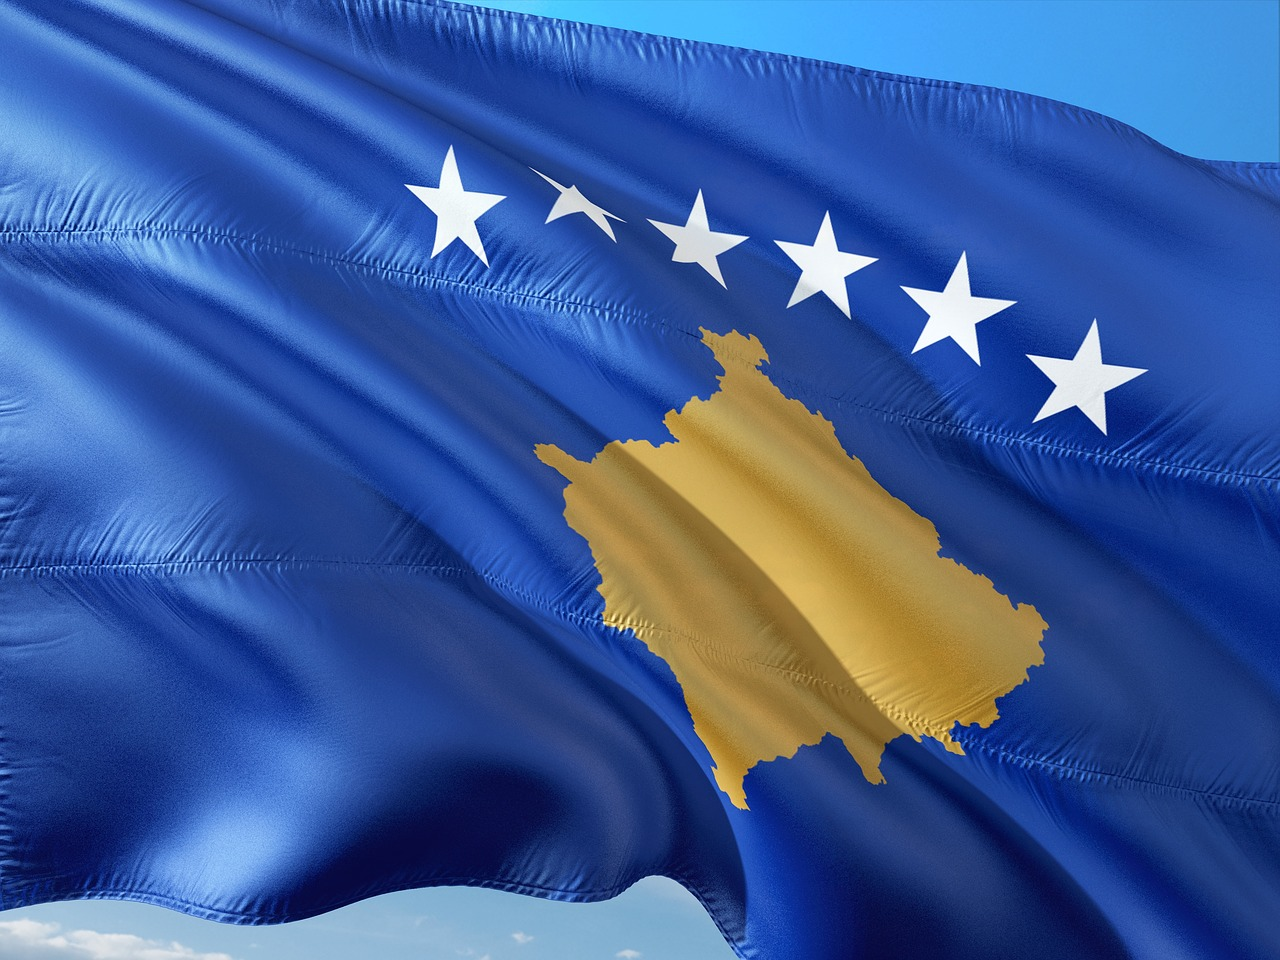 Kosovo to hold early elections after top constitutional court invalidates election of PM Avdullah Hoti